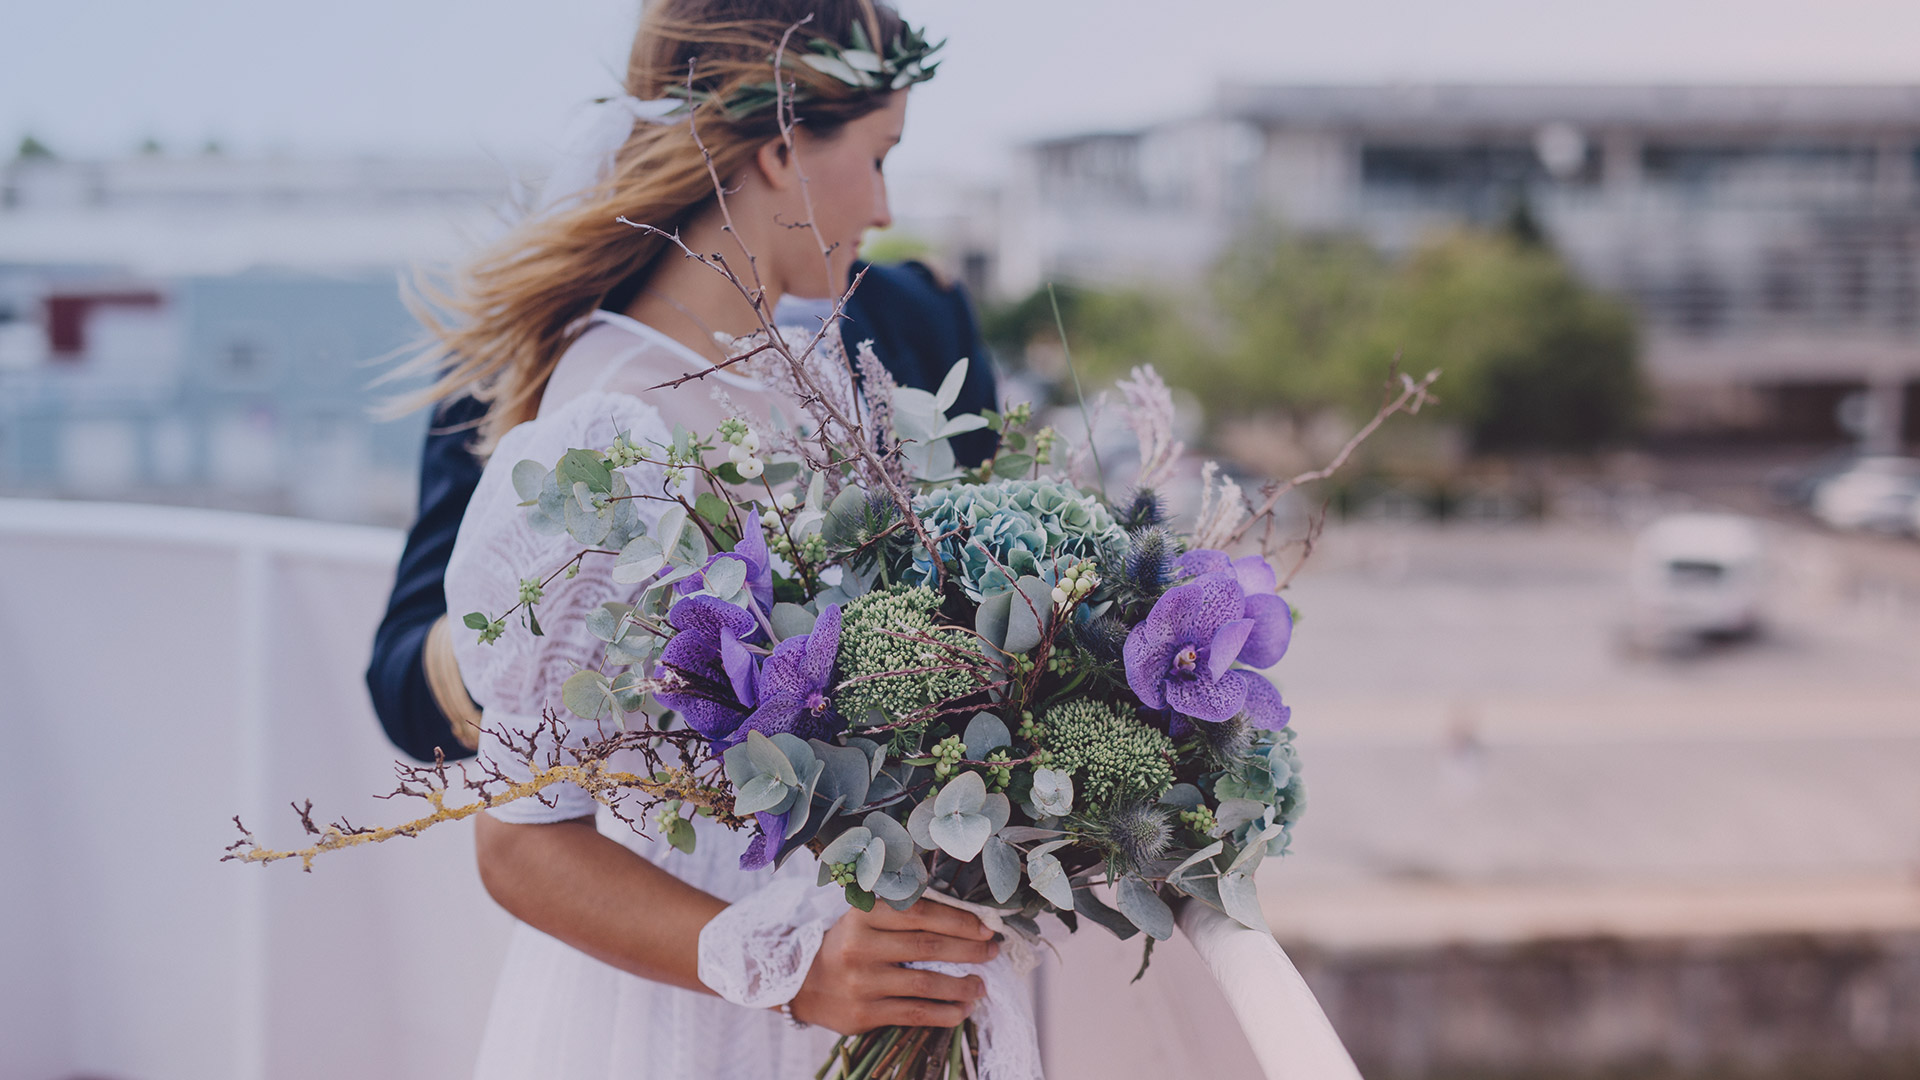 Wedding Coordinators & Wedding Organisers – Do I really need one for my special day?